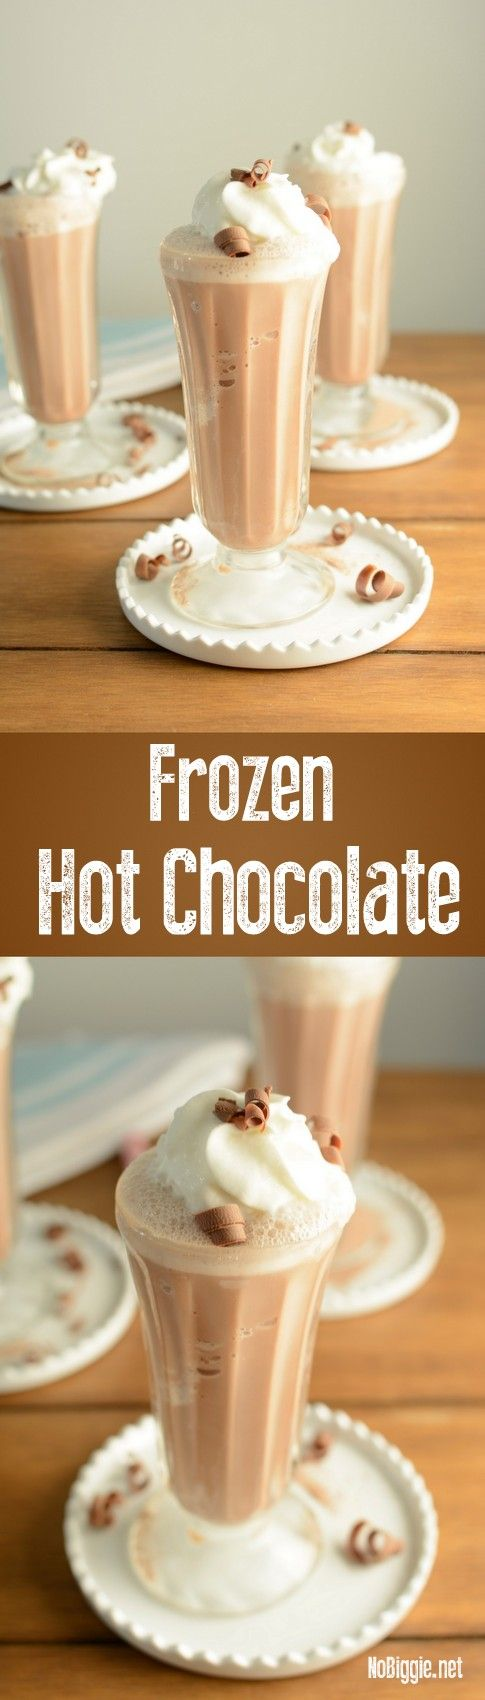 Best 25+ Frozen hot chocolate ideas on Pinterest | Summer ...